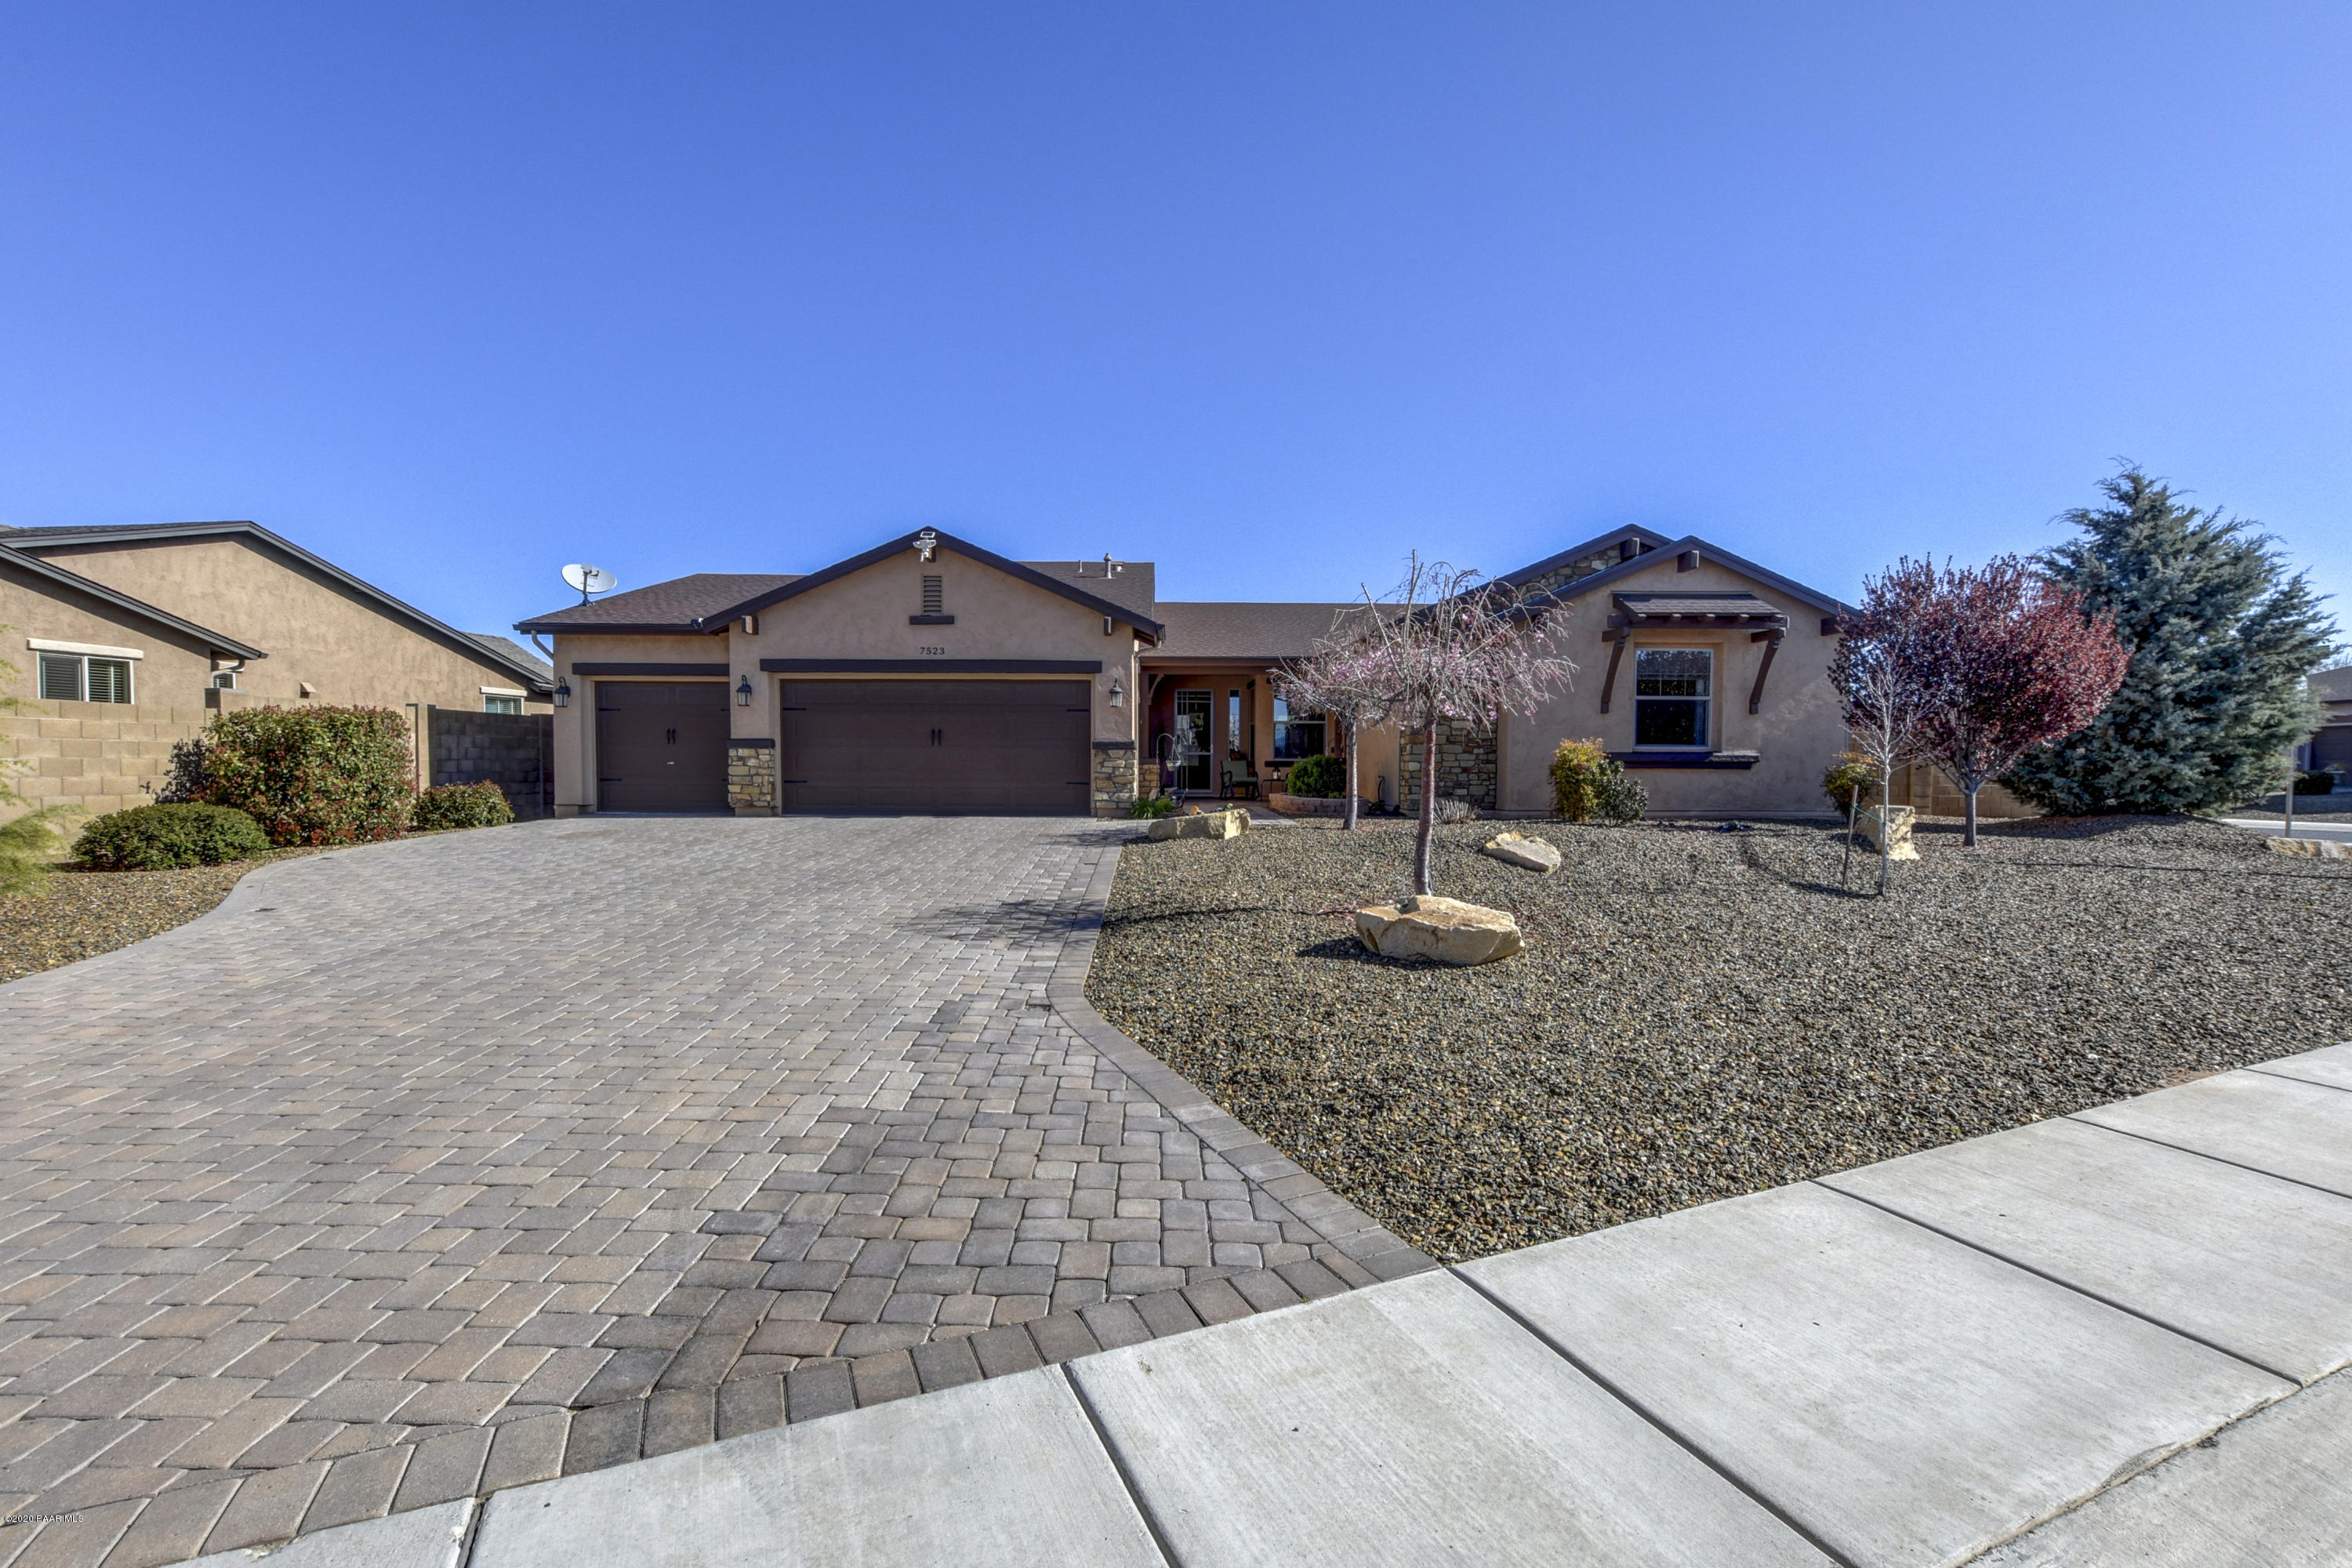 Photo of 7523 Dragoon, Prescott Valley, AZ 86315